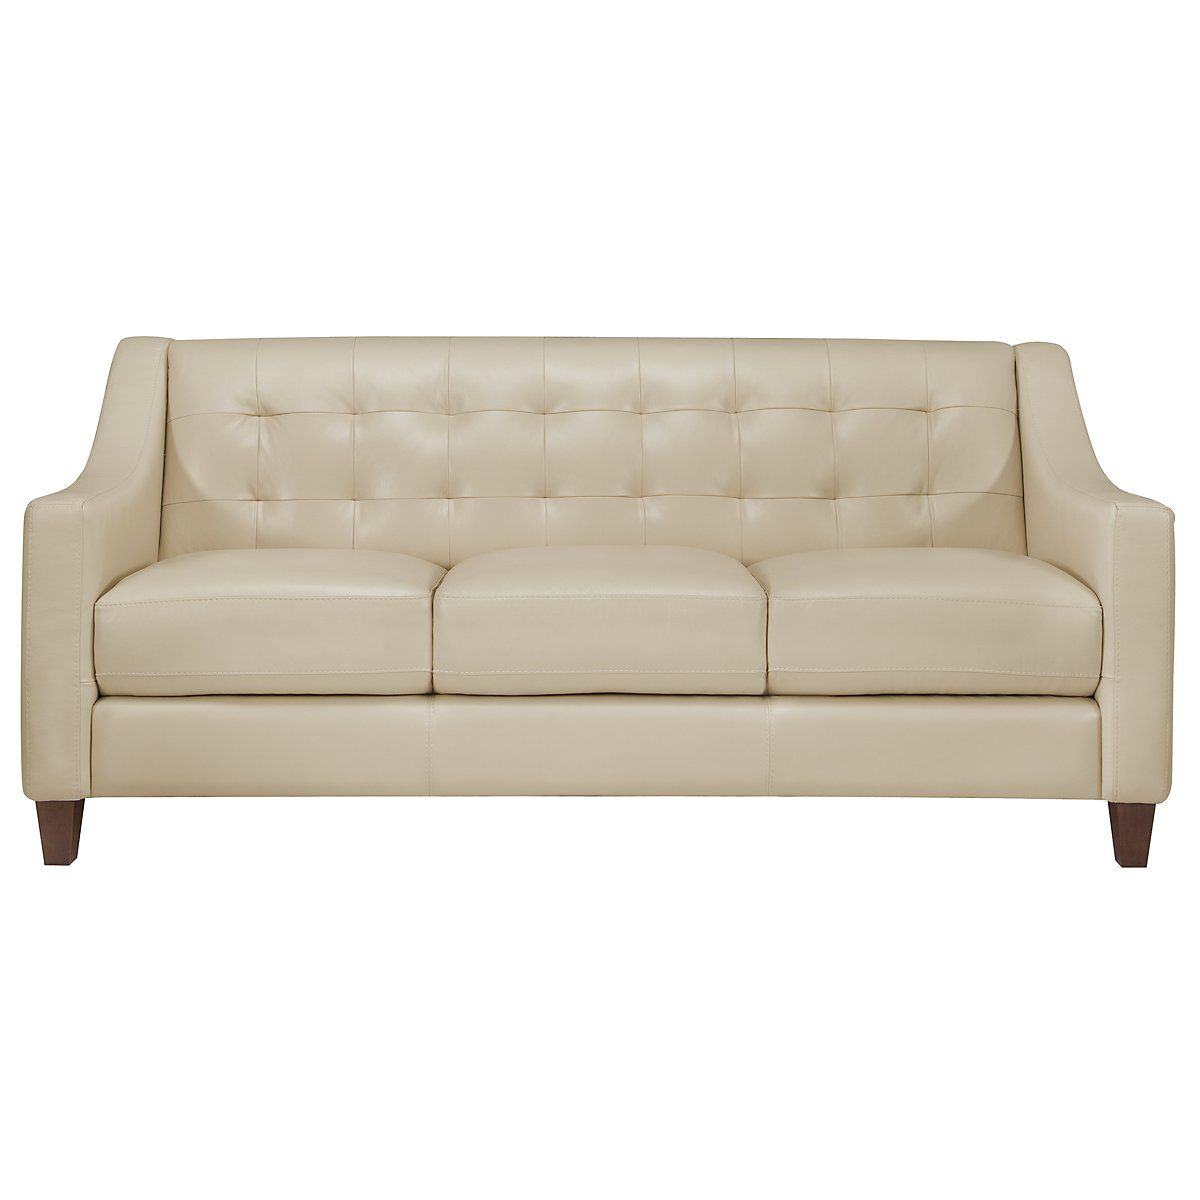 Superbe Cool Taupe Leather Sofa , Great Taupe Leather Sofa 40 For Your Contemporary  Sofa Inspiration With